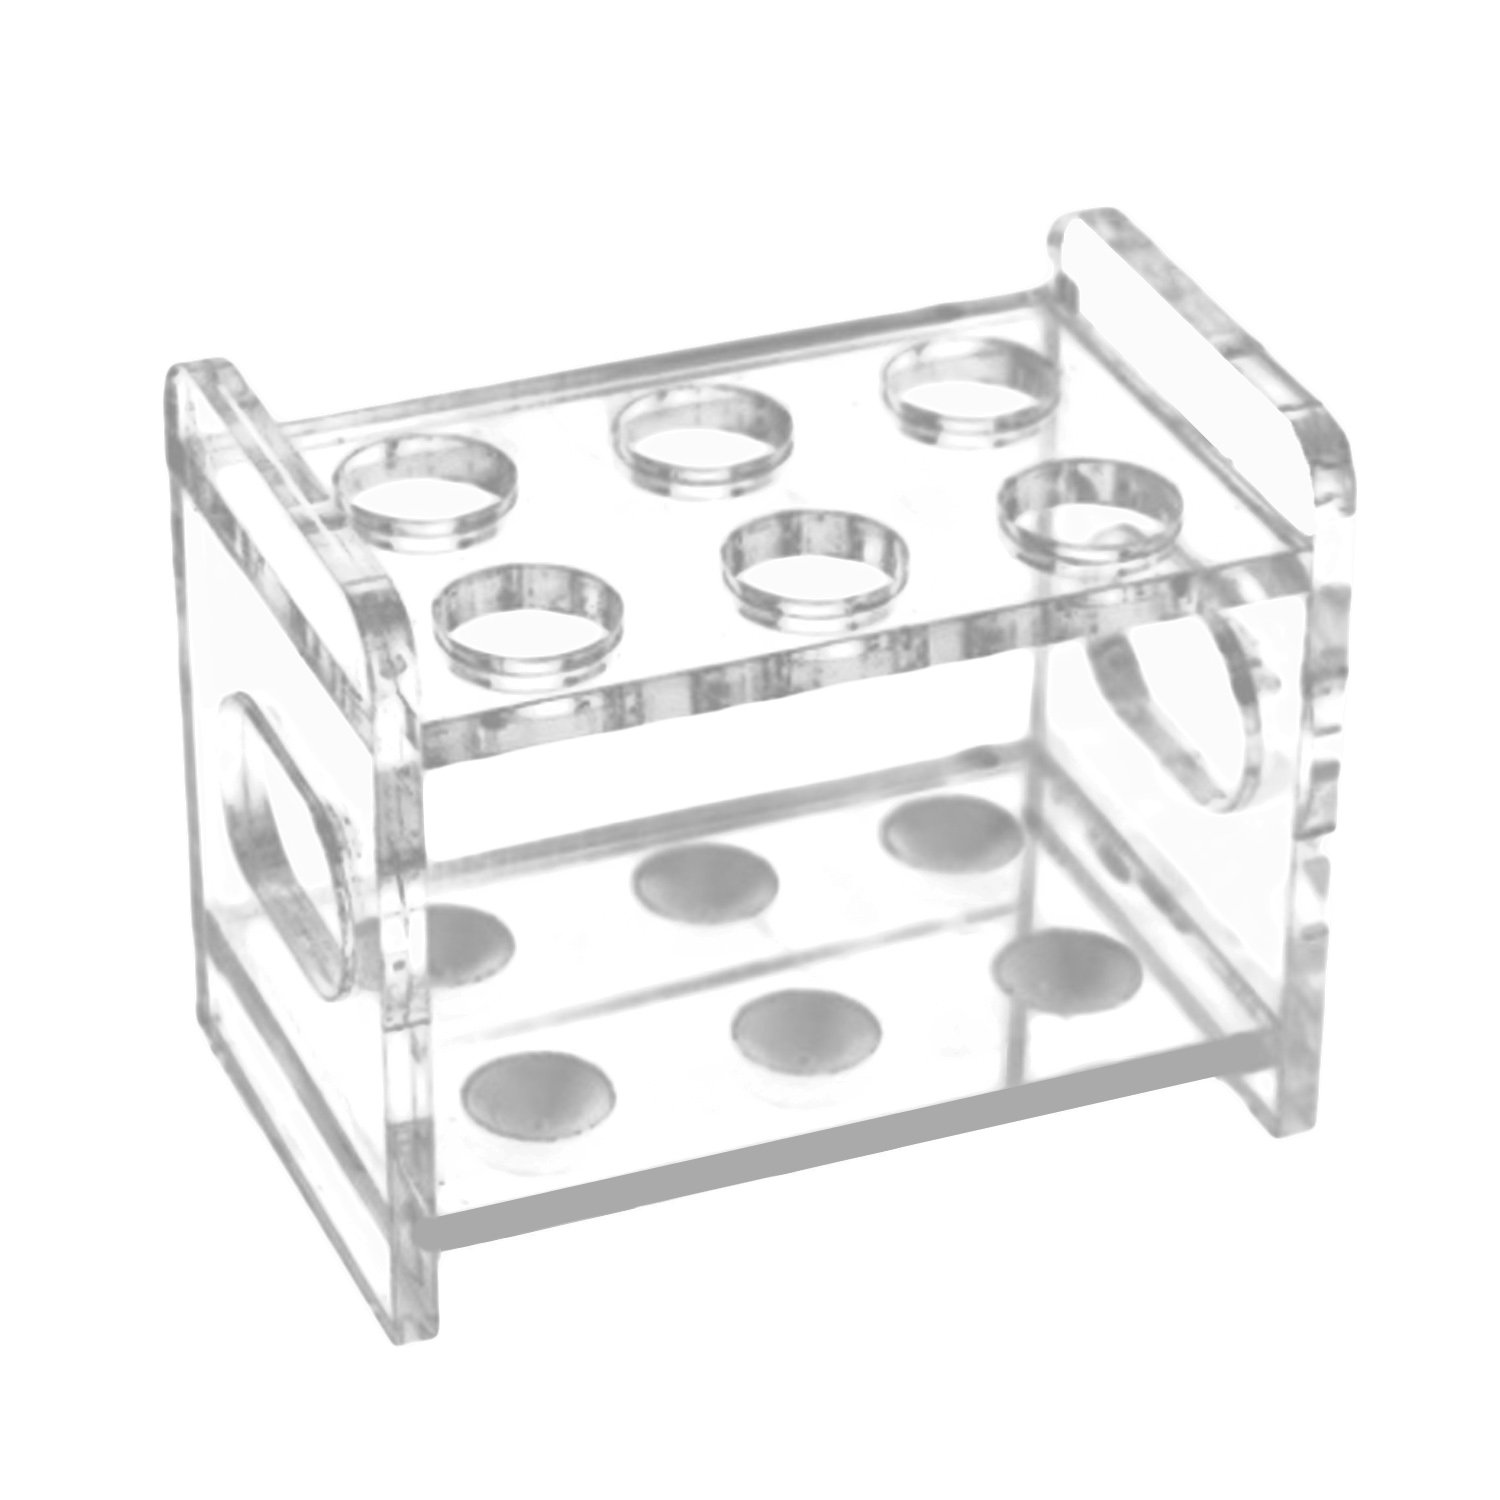 12 Slots Acrylic Strong Test Tube Cups Holder Organizer Rack for Laboratory Exhibition Bar KTV Gosear